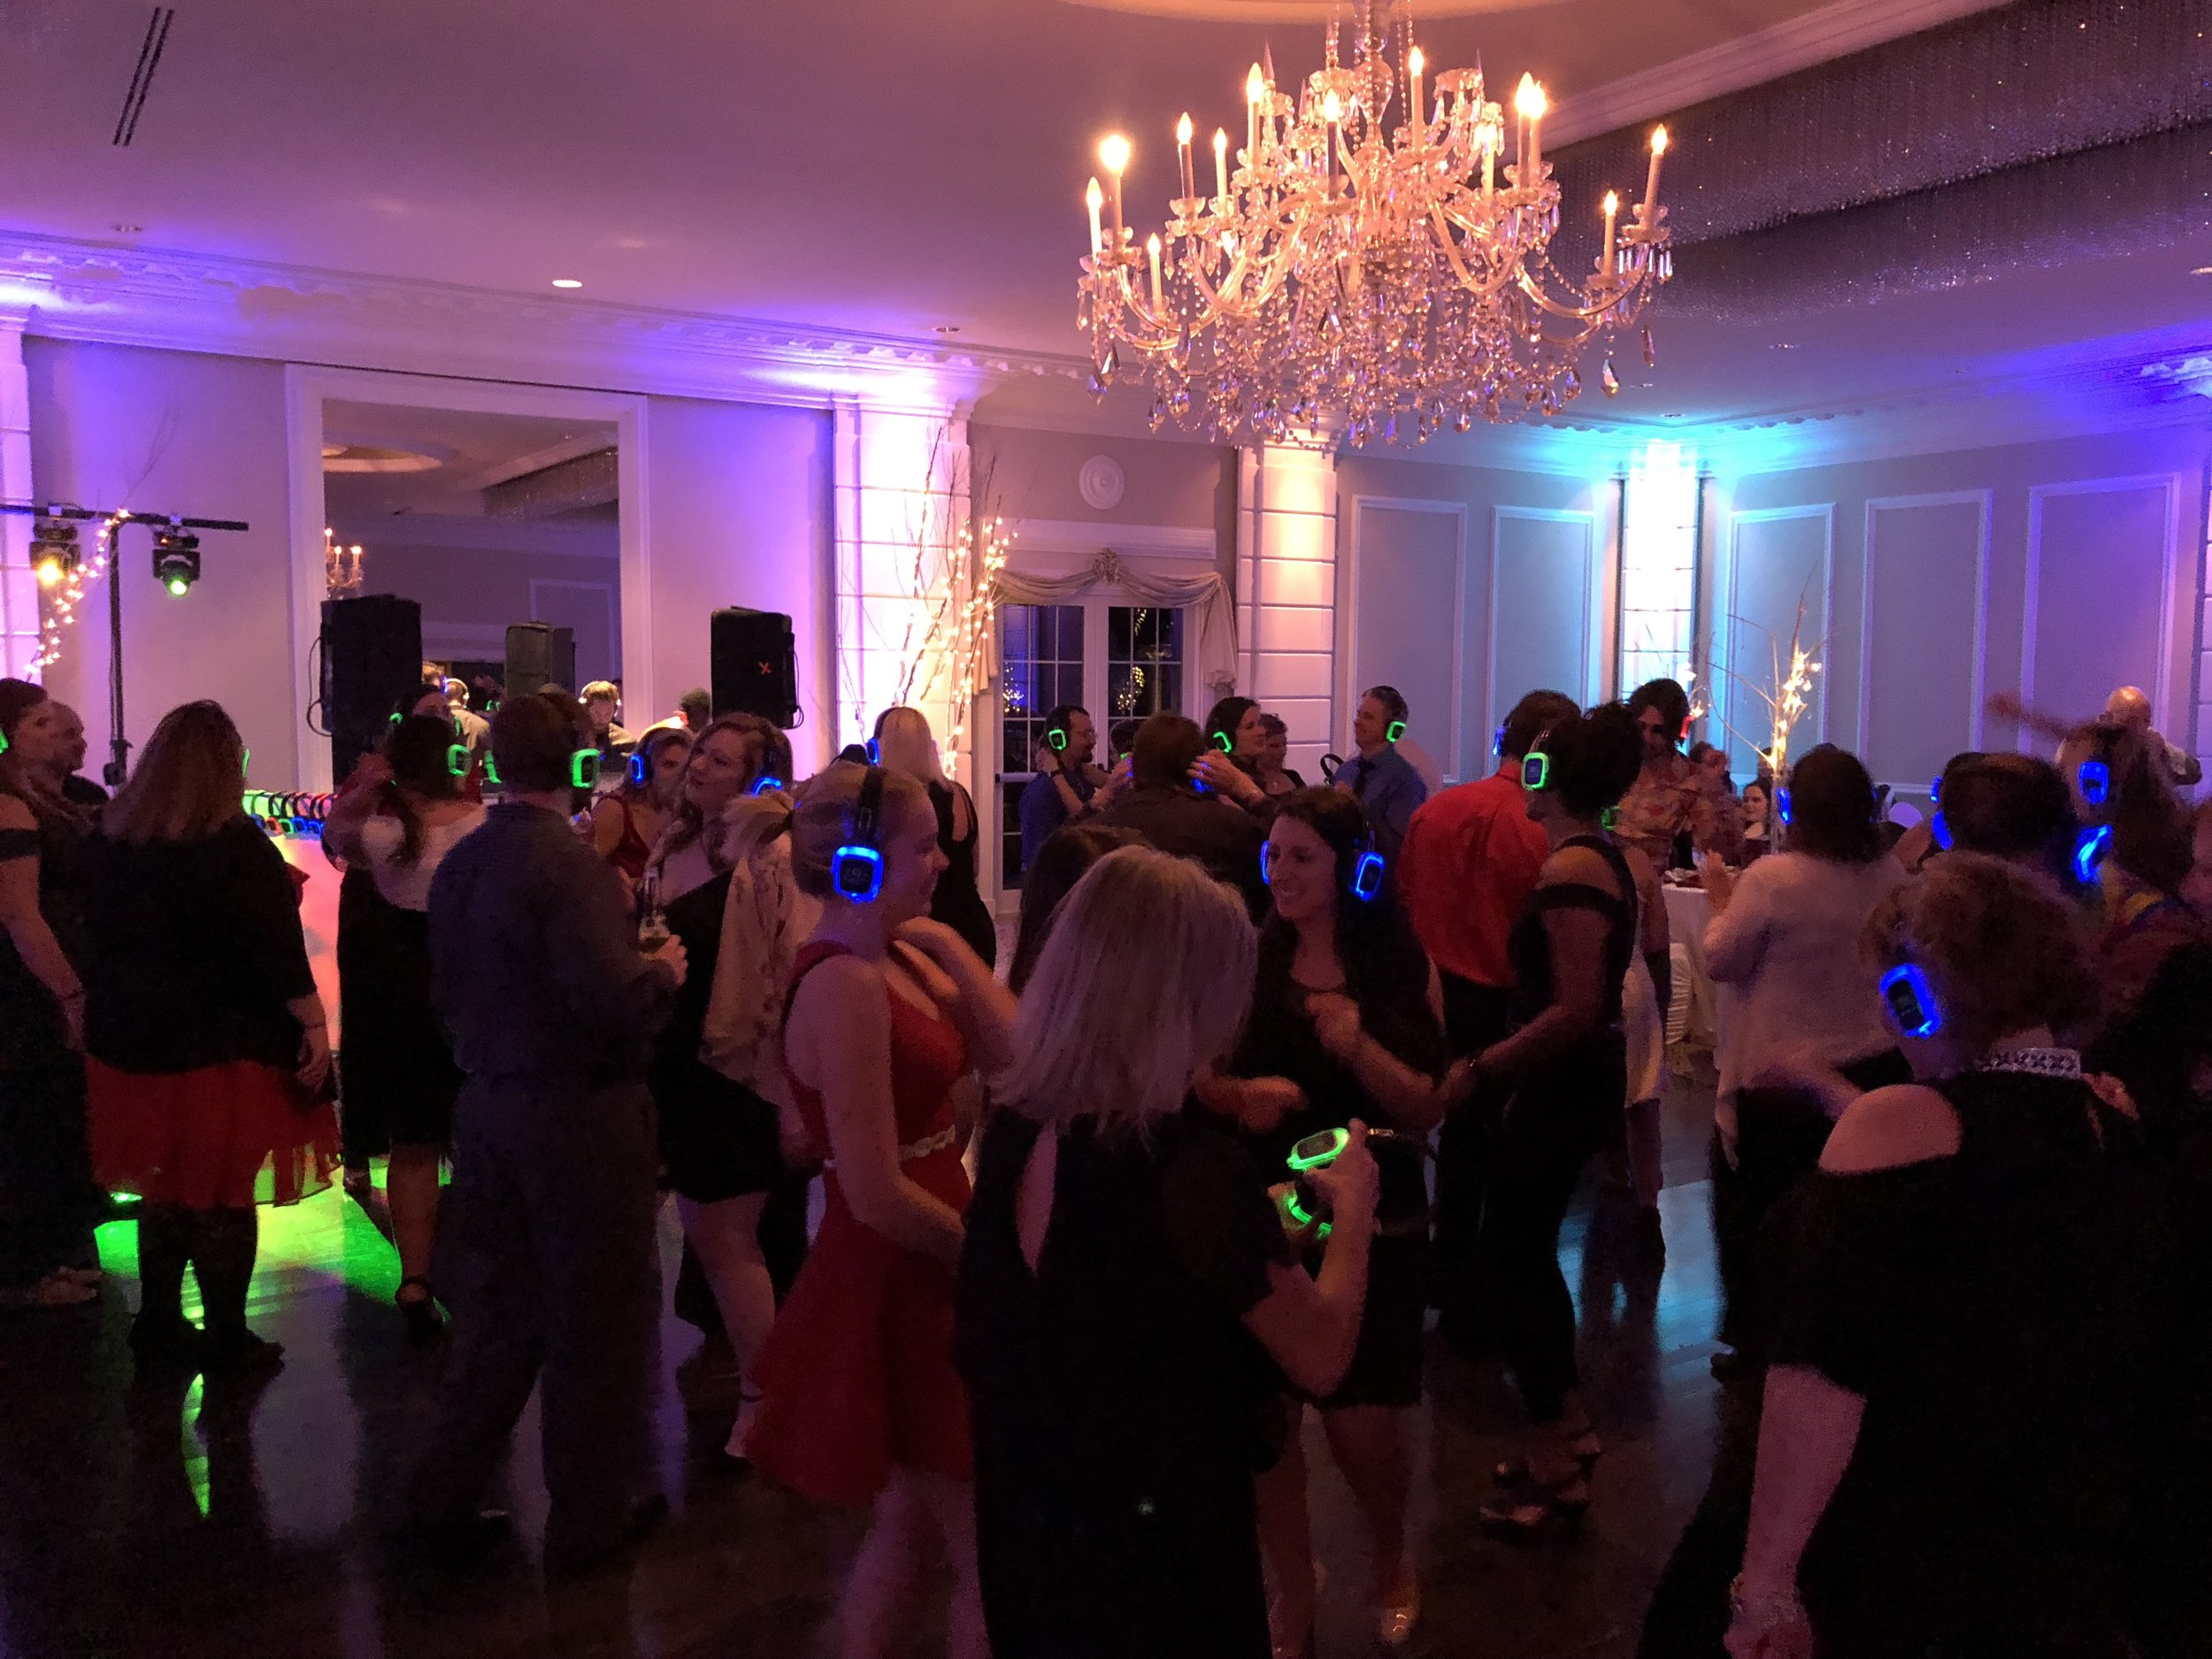 Silent Disco - Turn your party into a silent disco! Headphones for everyone and three channels of audio to choose from. This event is priced on a per event basis so inquire to find out more!